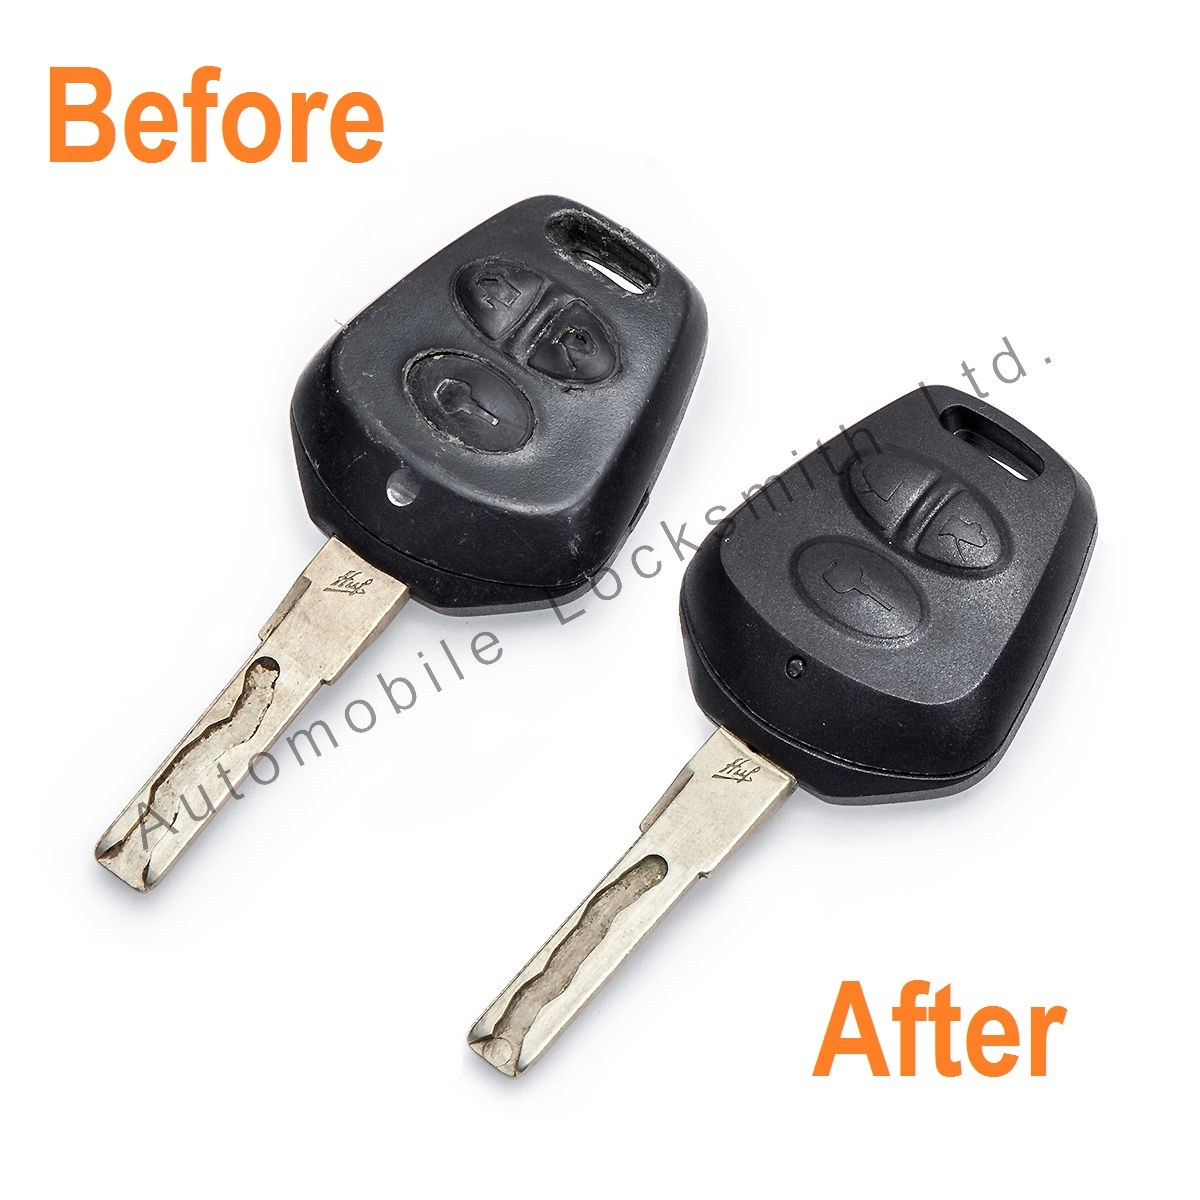 Repair Service for Porsche 3 button remote key